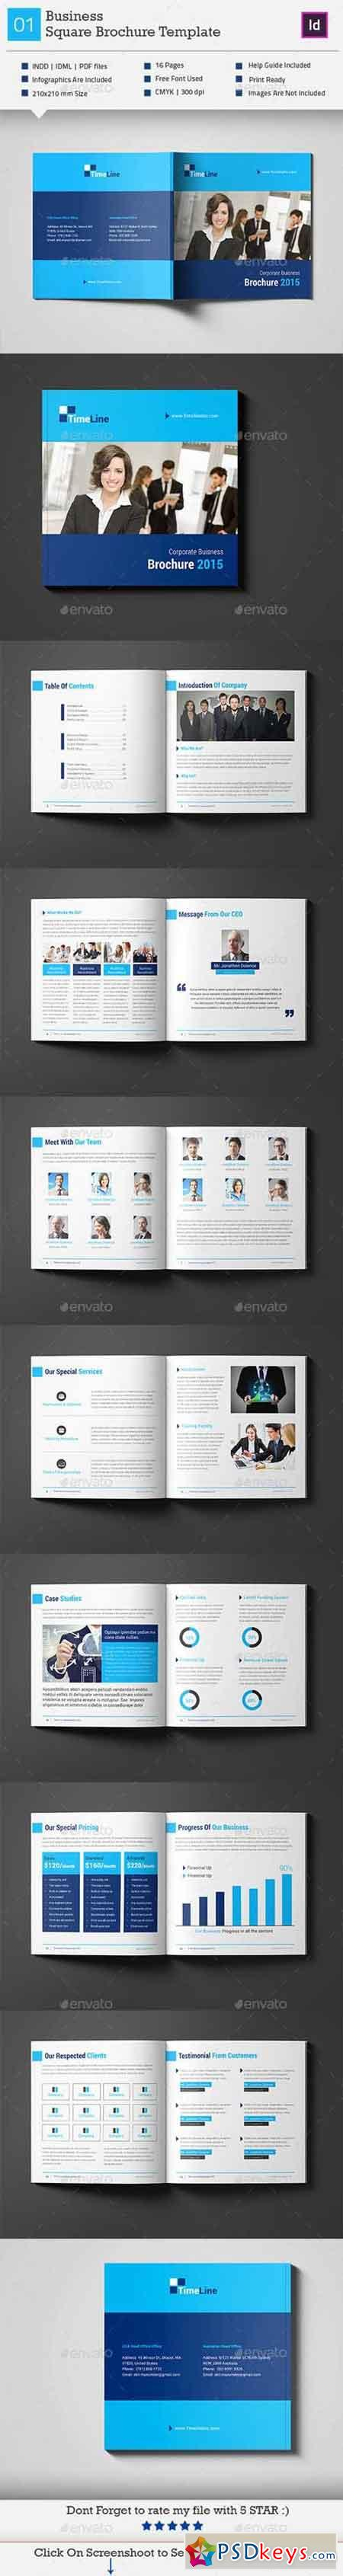 Business Square Brochure Template_V2 11251825